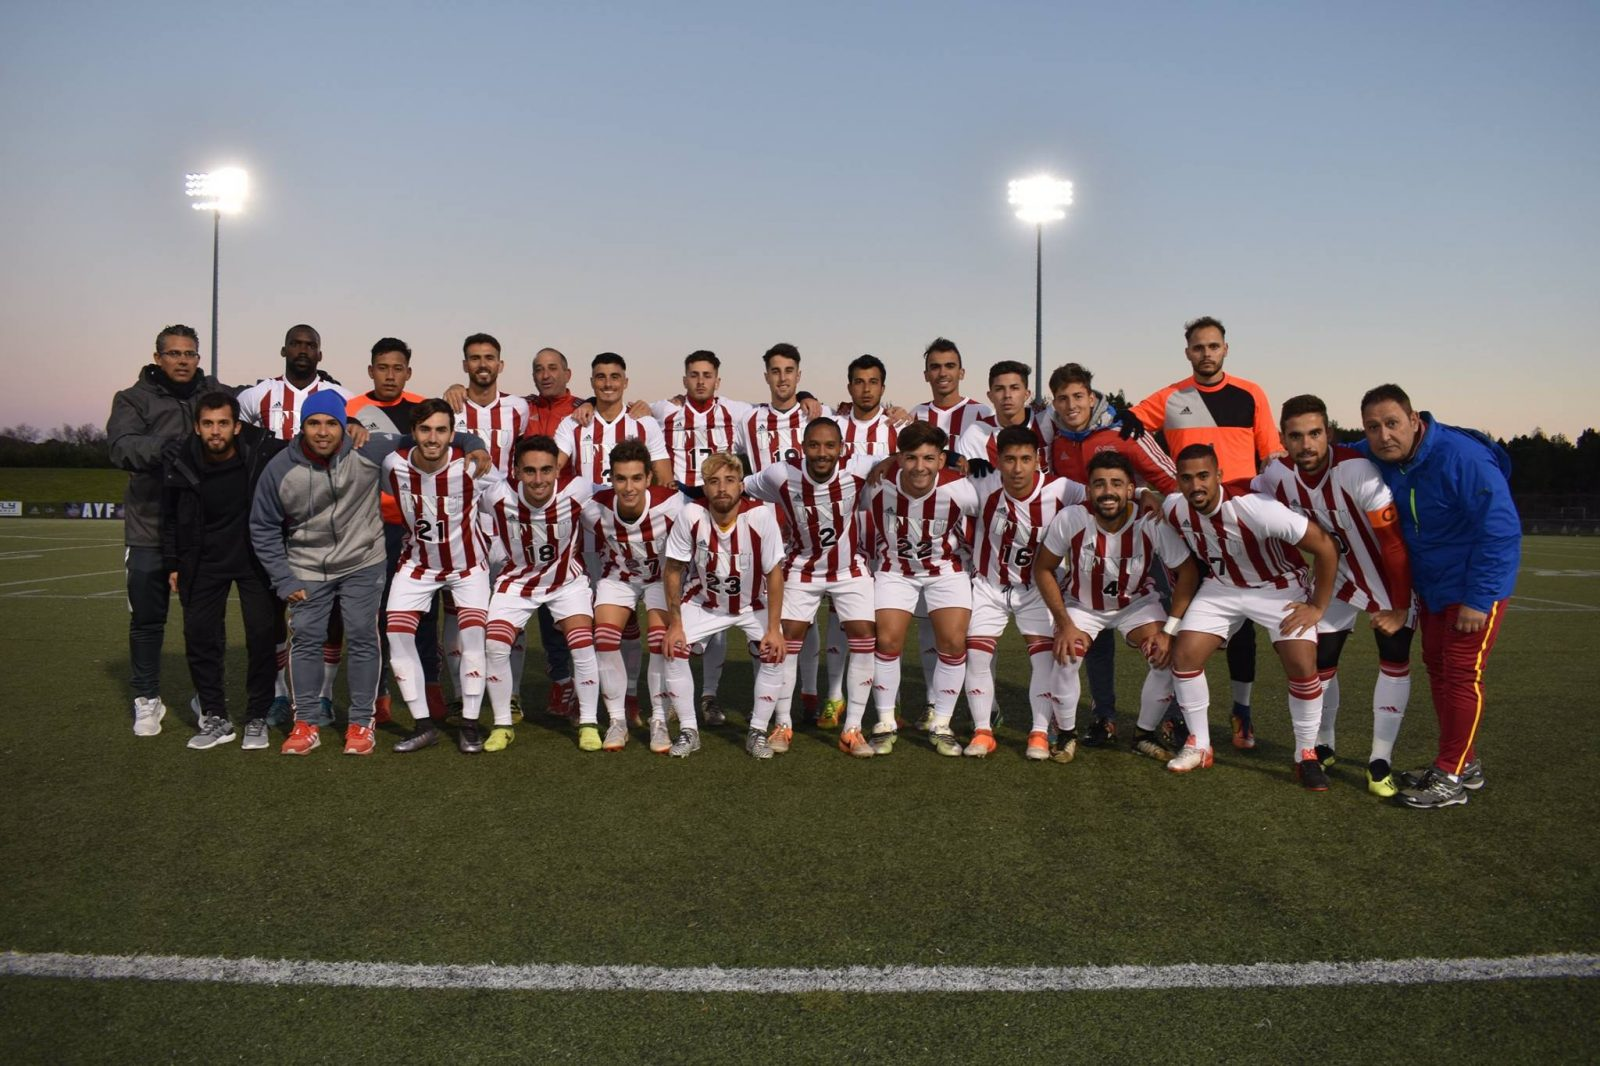 FNU Men's soccer team 2018